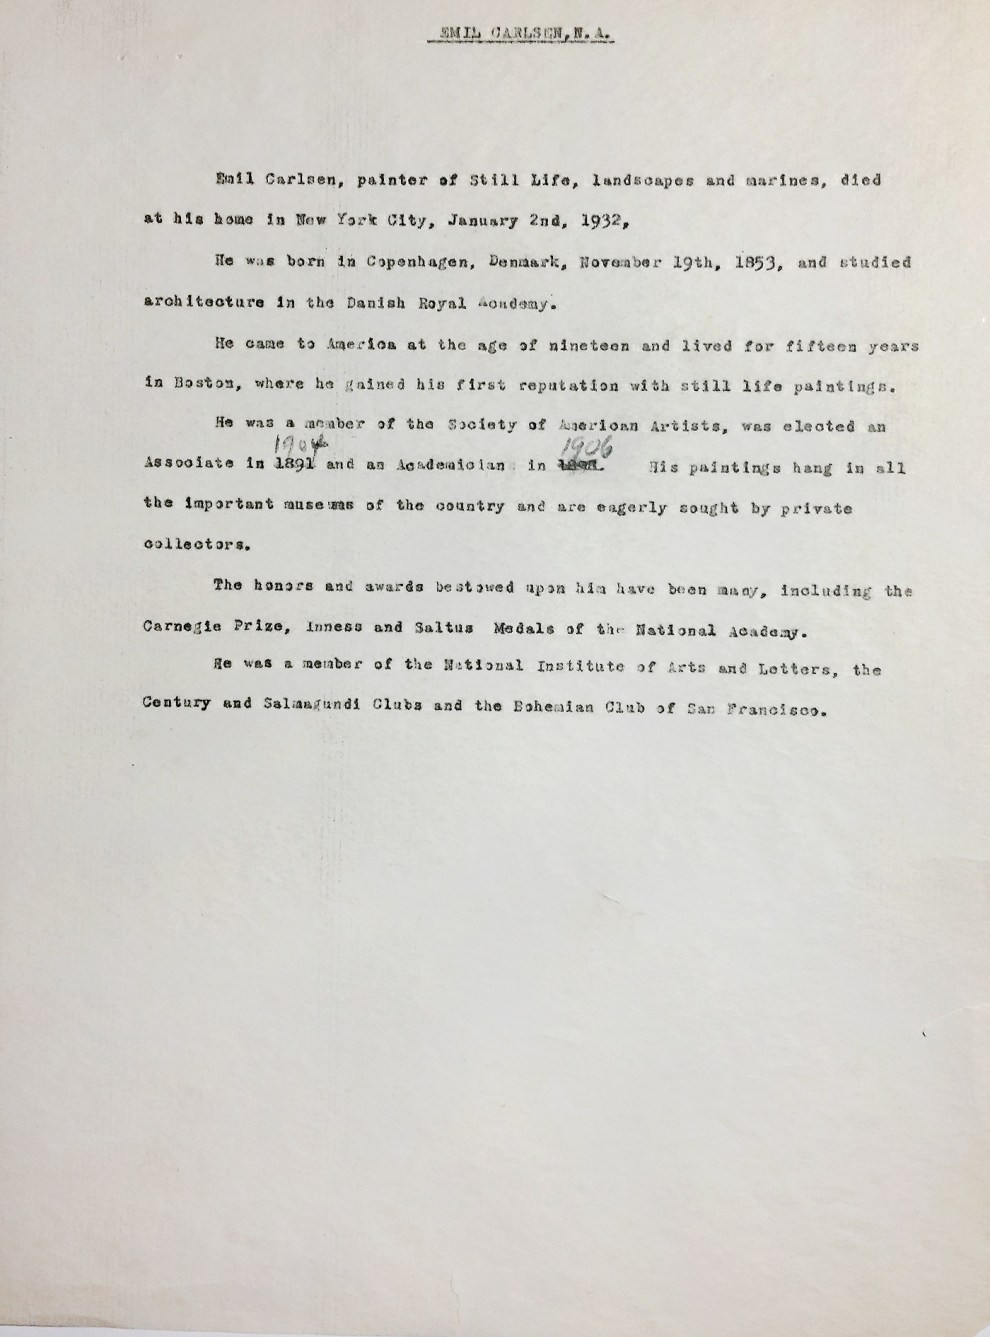 """Brief Artist Biography Written by the Staff of the National Academy of Design"" provided by National Academy of Design, New York, NY, c.1930"